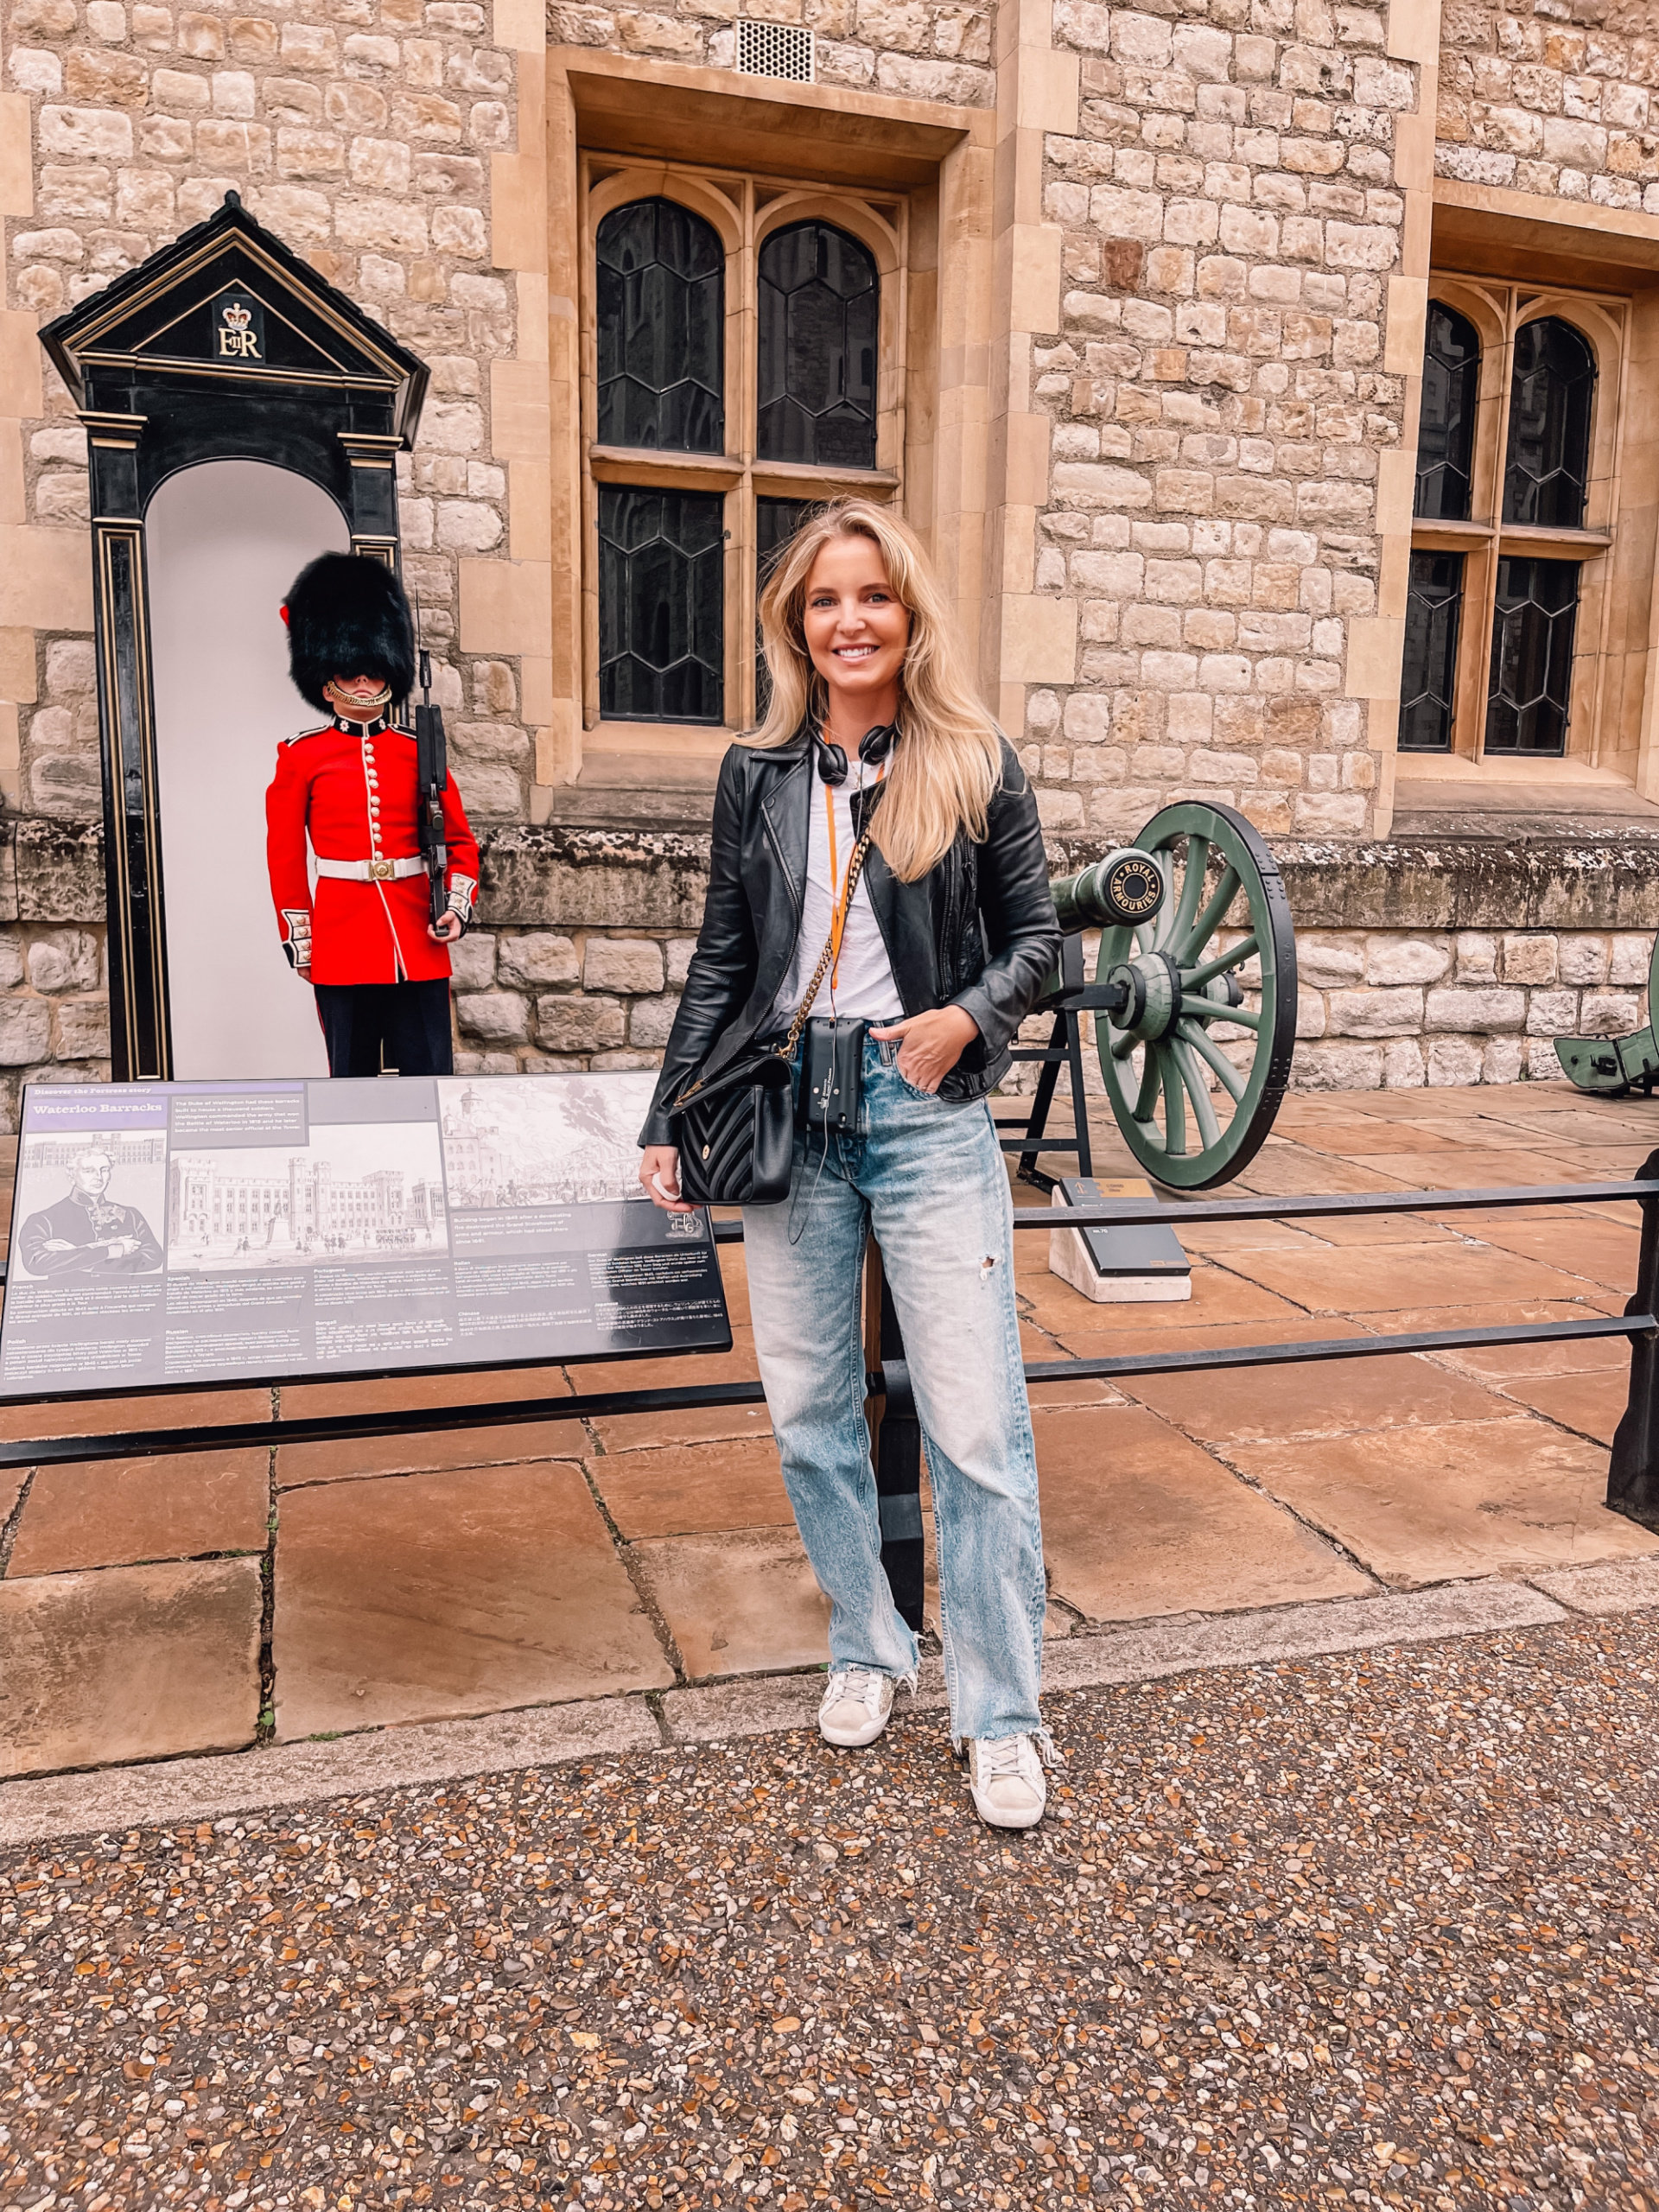 where to travel from spain, travel from spain, travel from madrid, erin bsubee, where to travel, weekend trips from spain, weekend trips from madrid, london, england, tower of london, black letaher moto jacket, nation ltd tee, golden goose sneakers, moussy vintage lomita jeans